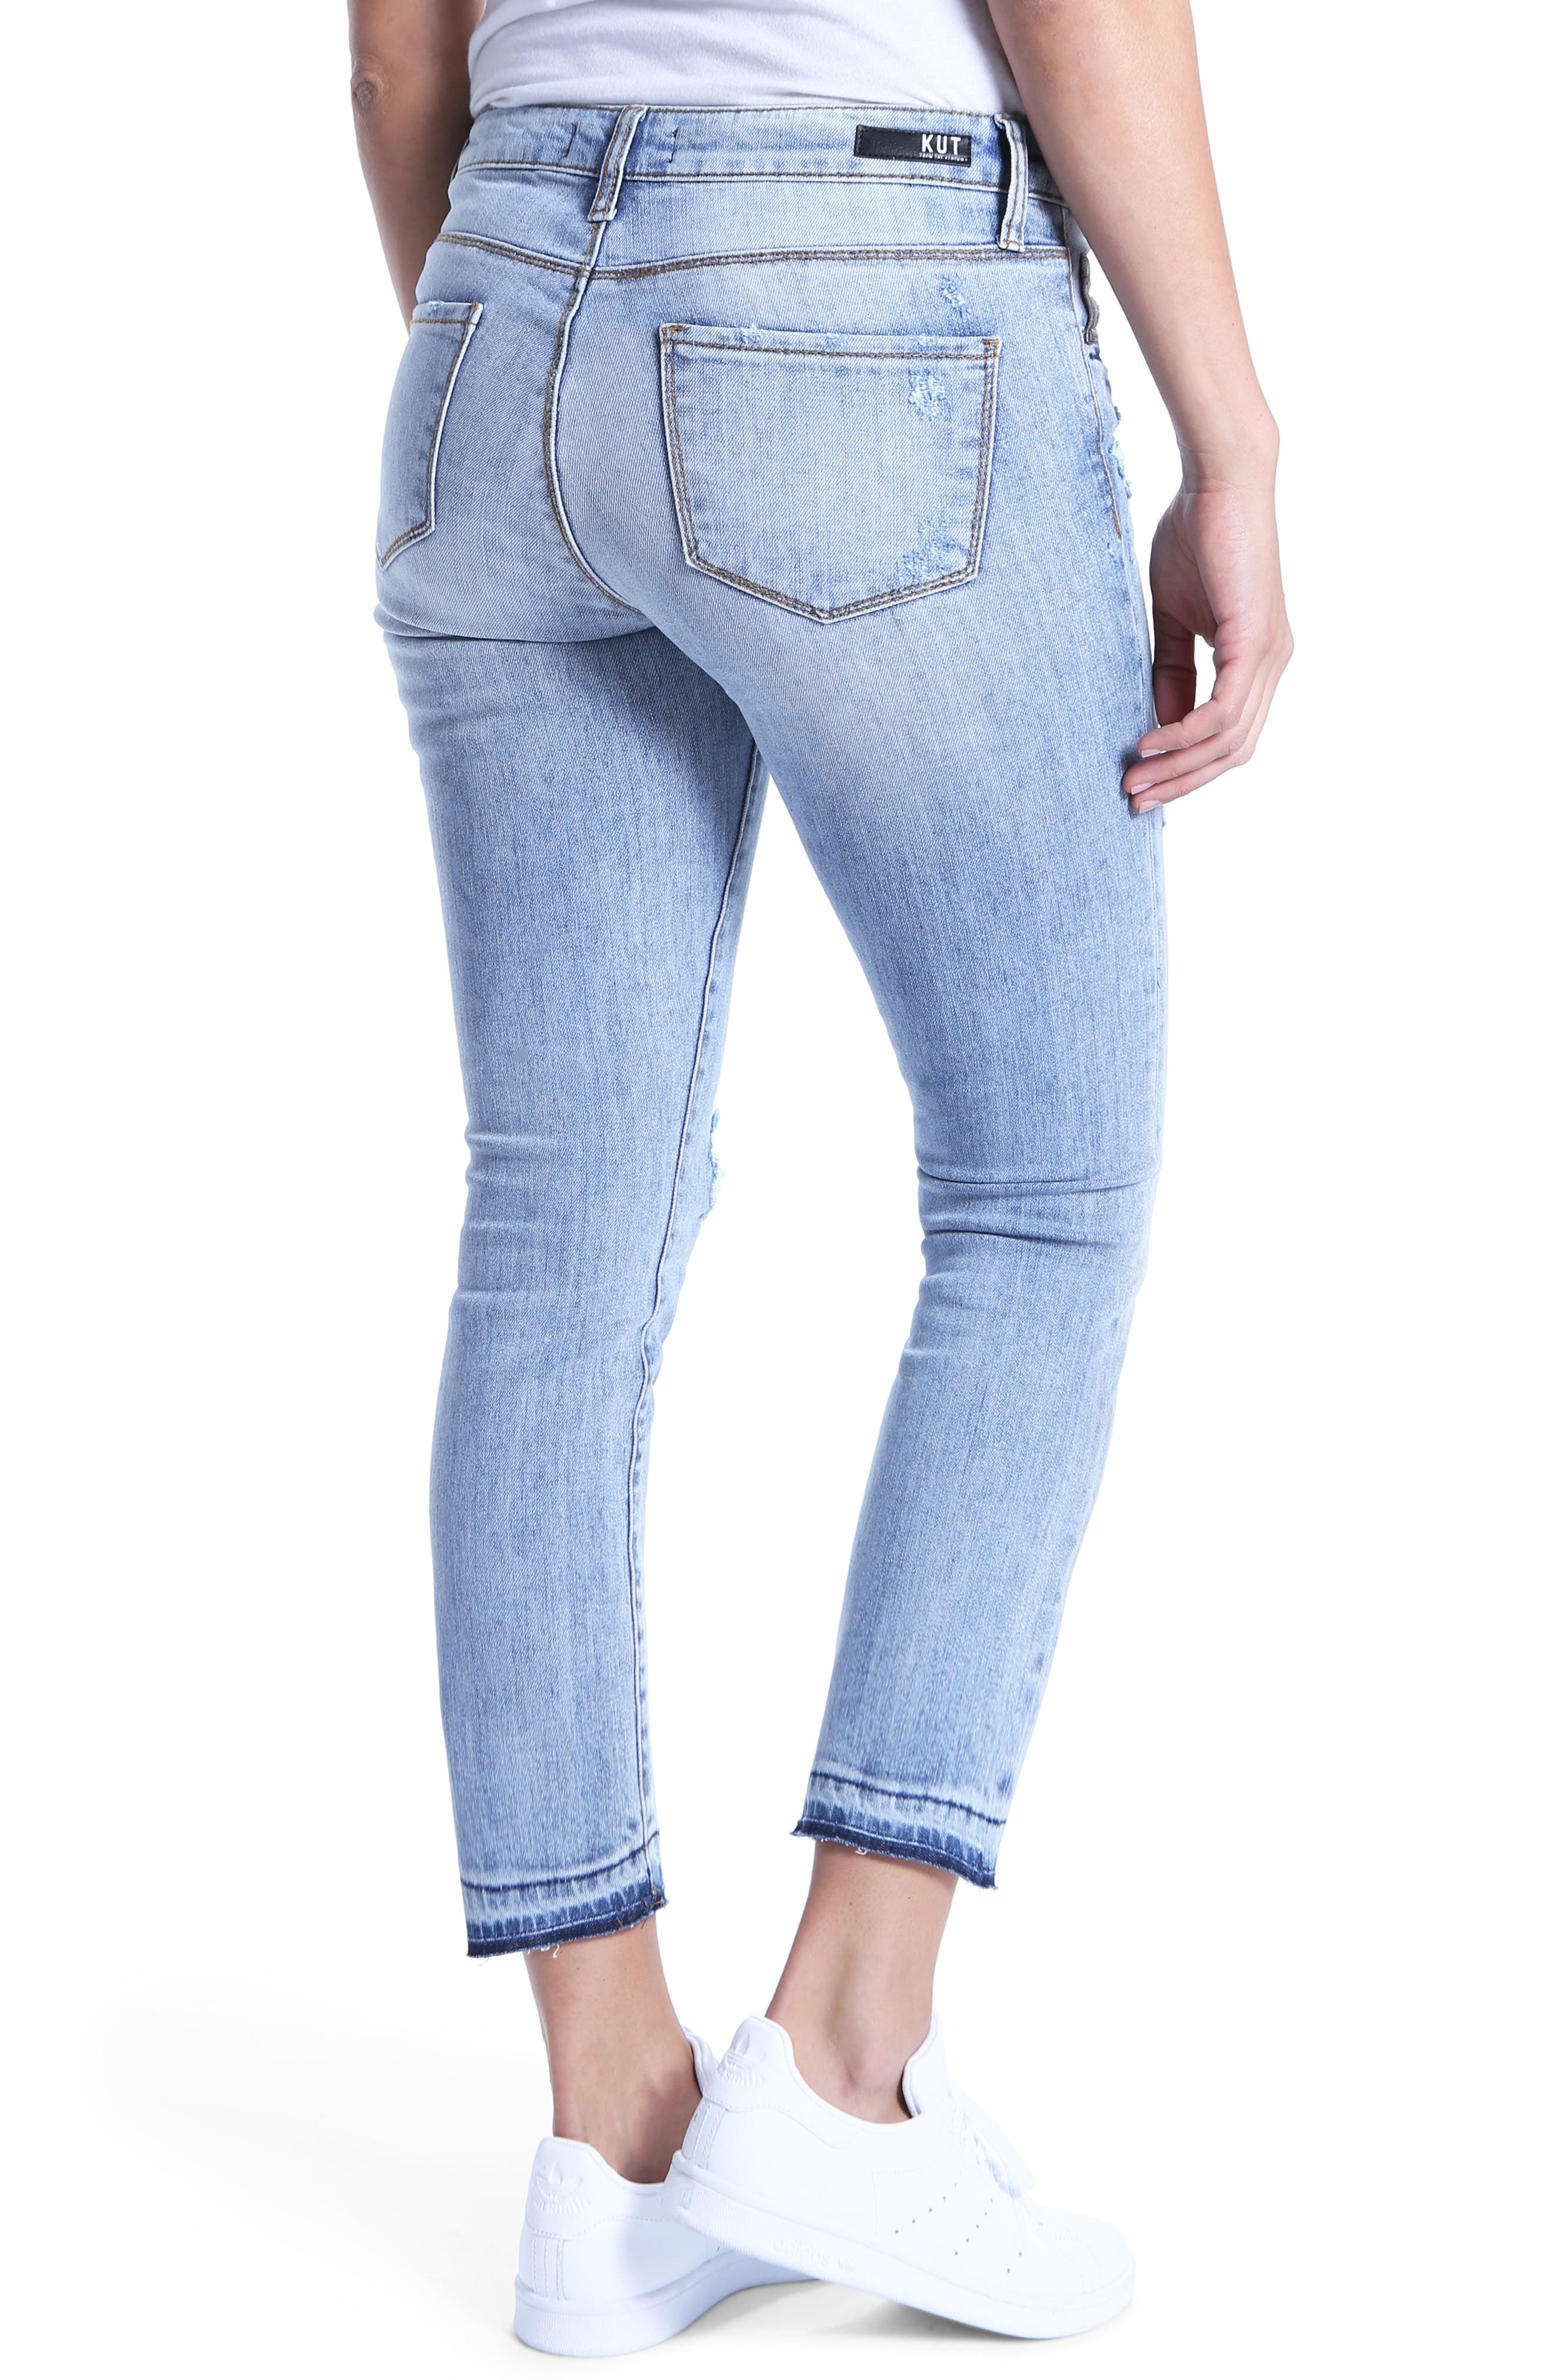 Reese Ripped Ankle Jeans,                             Alternate thumbnail 2, color,                             Announce